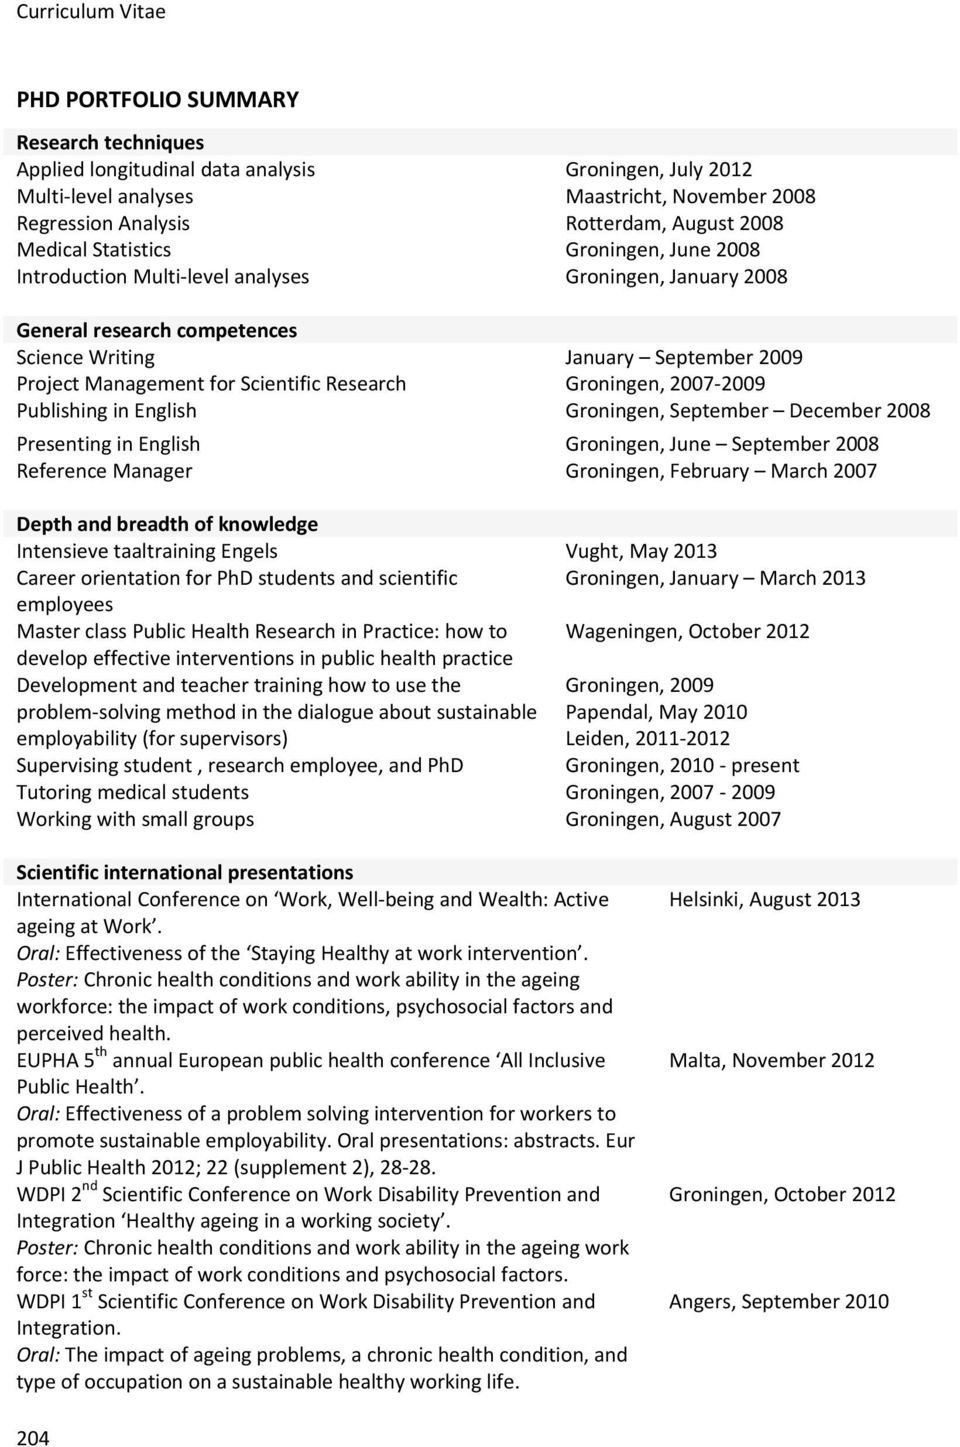 Research Groningen, 2007 2009 Publishing in English Groningen, September December 2008 Presenting in English Groningen, June September 2008 Reference Manager Groningen, February March 2007 Depth and